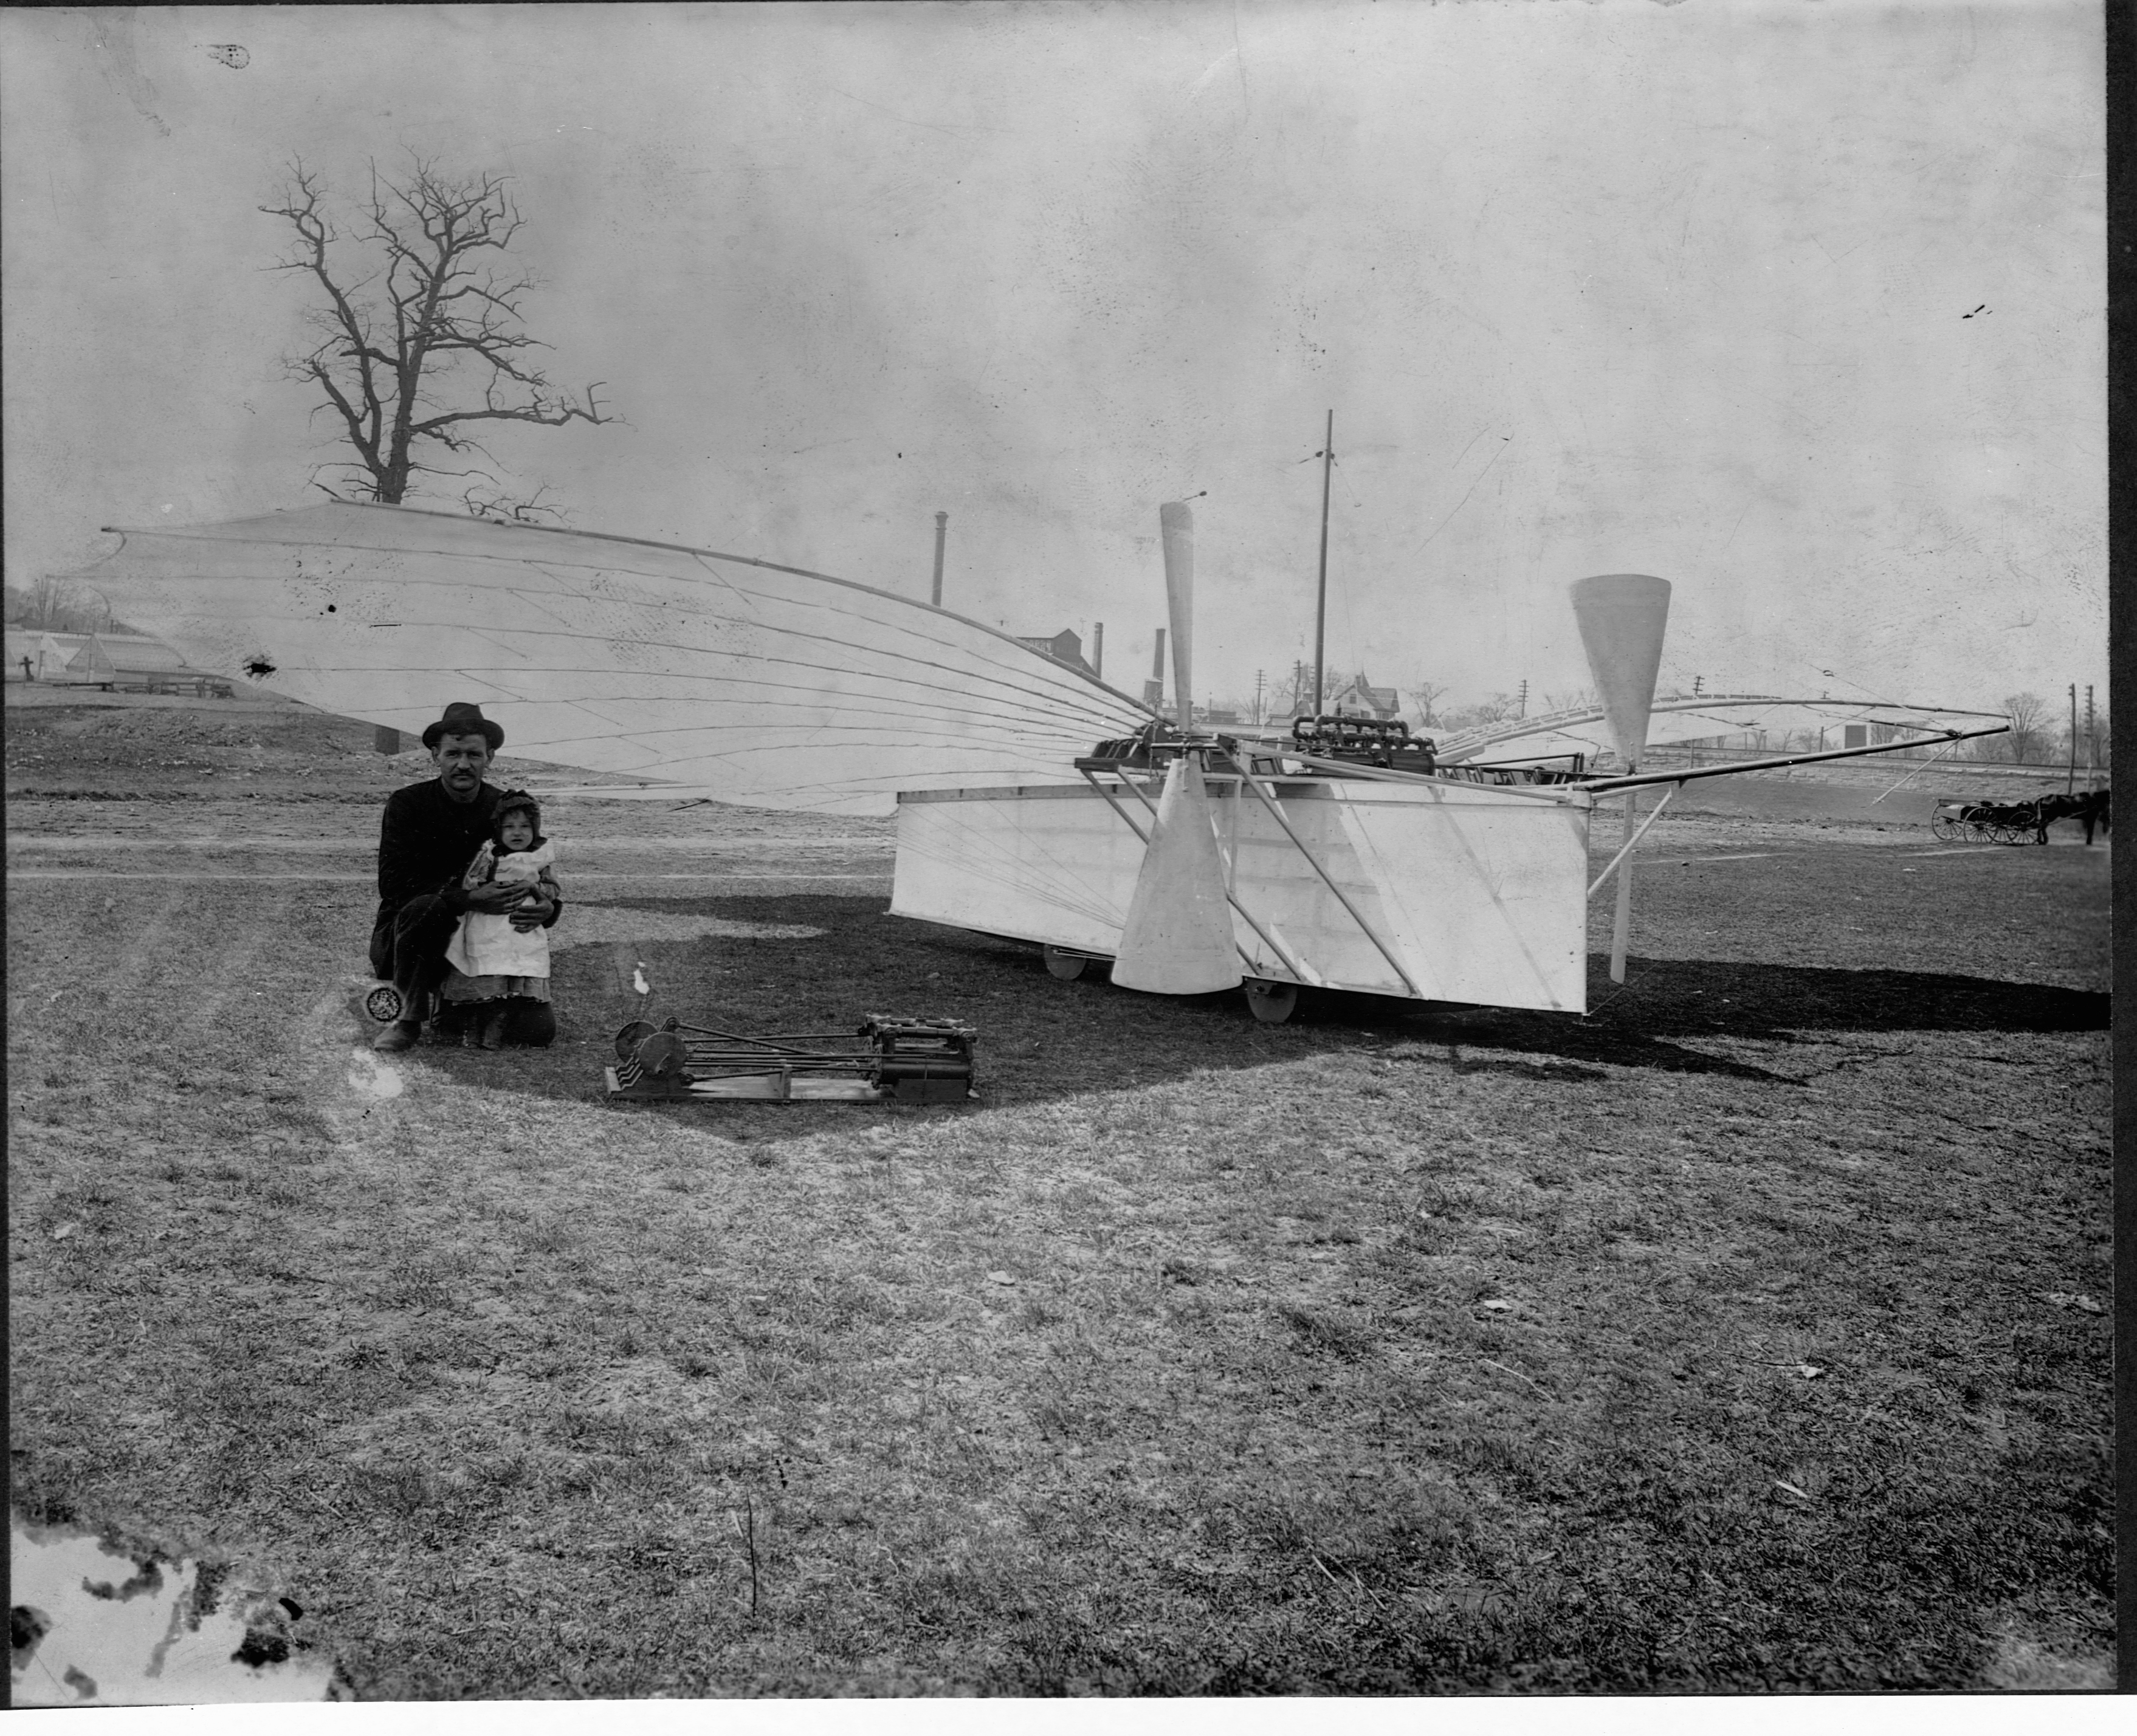 First Wright Brothers Flight with regard to history faceoff: who was first in flight? - history in the headlines